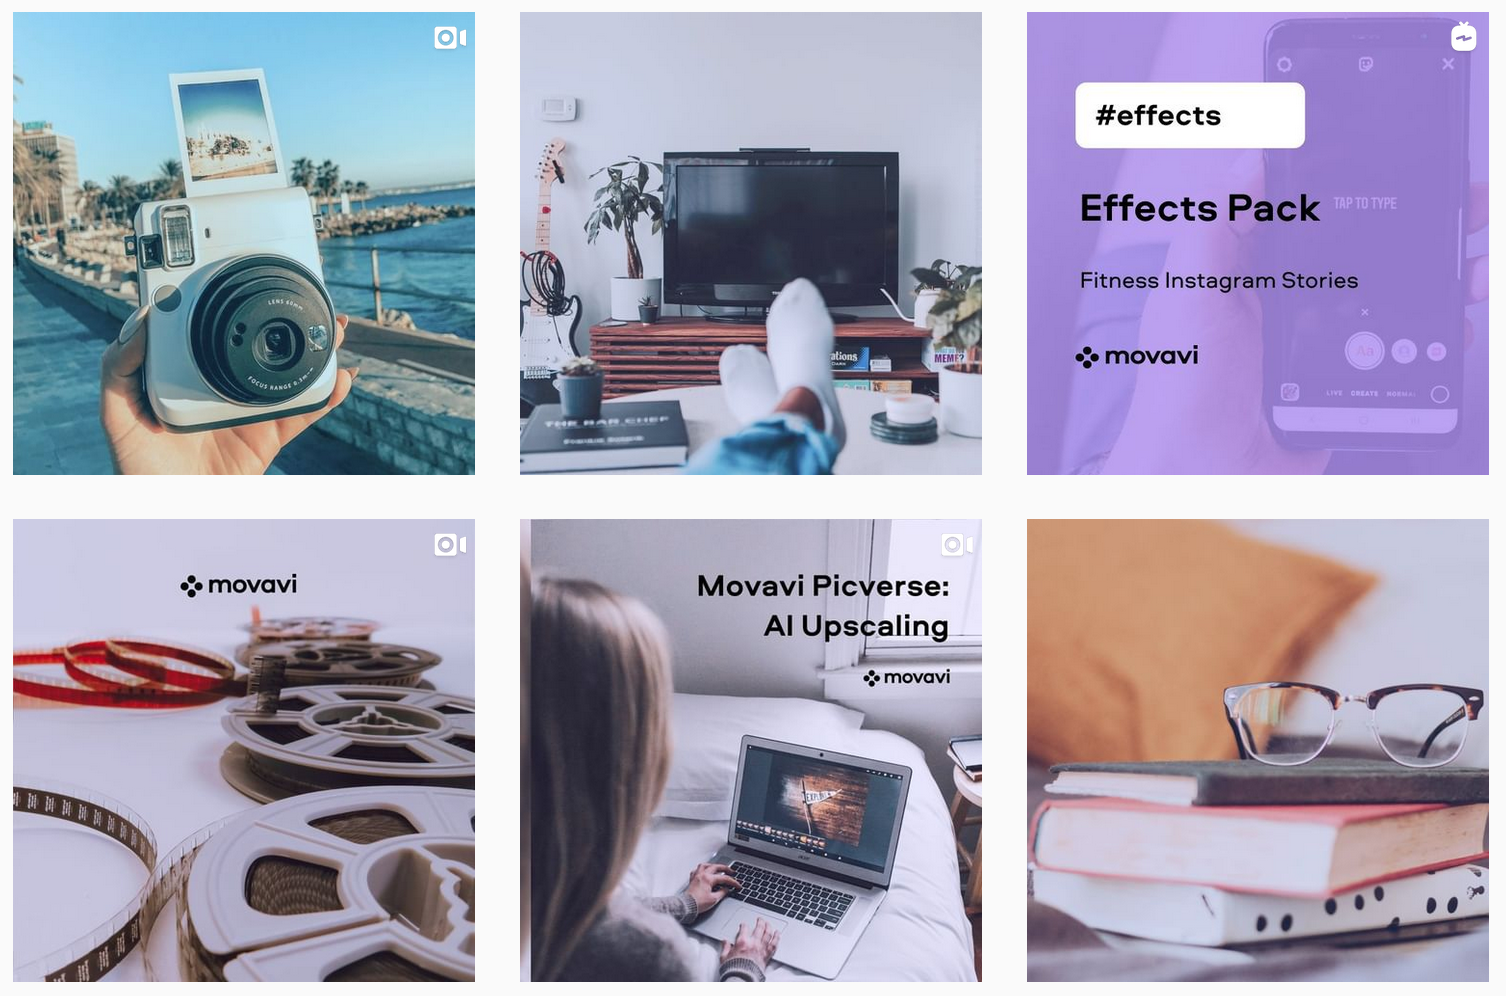 Movavi Software | Instagram Feed | Software Brands Featured on Afluencer